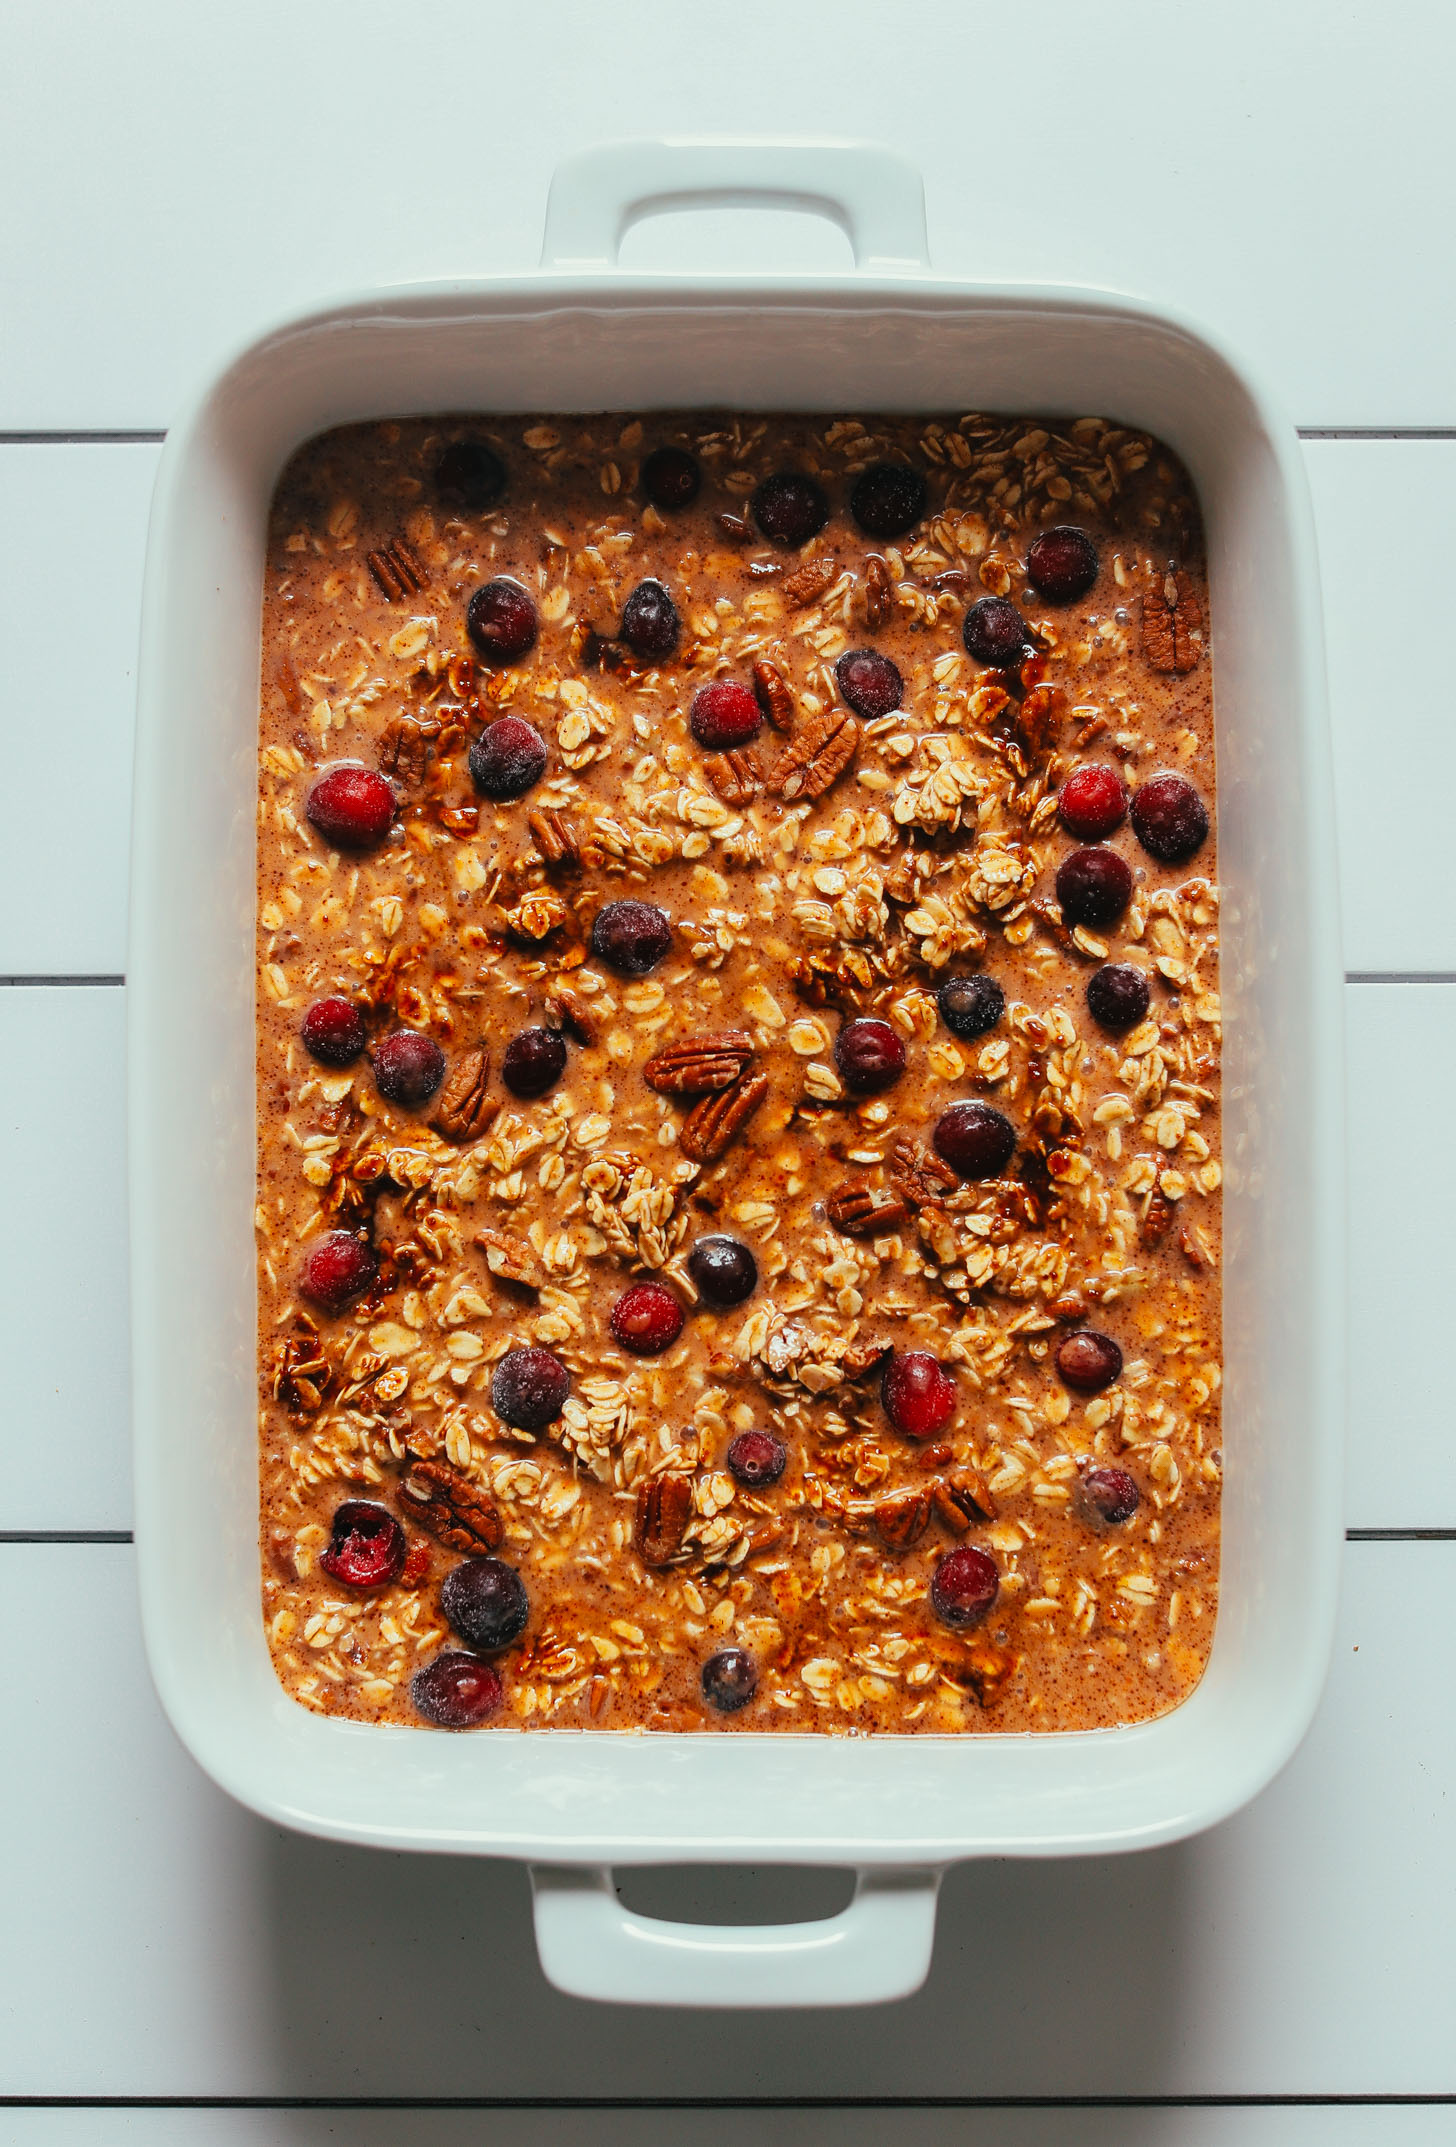 Baking dish of our Vegan Pumpkin Baked Oatmeal with Cranberries recipe